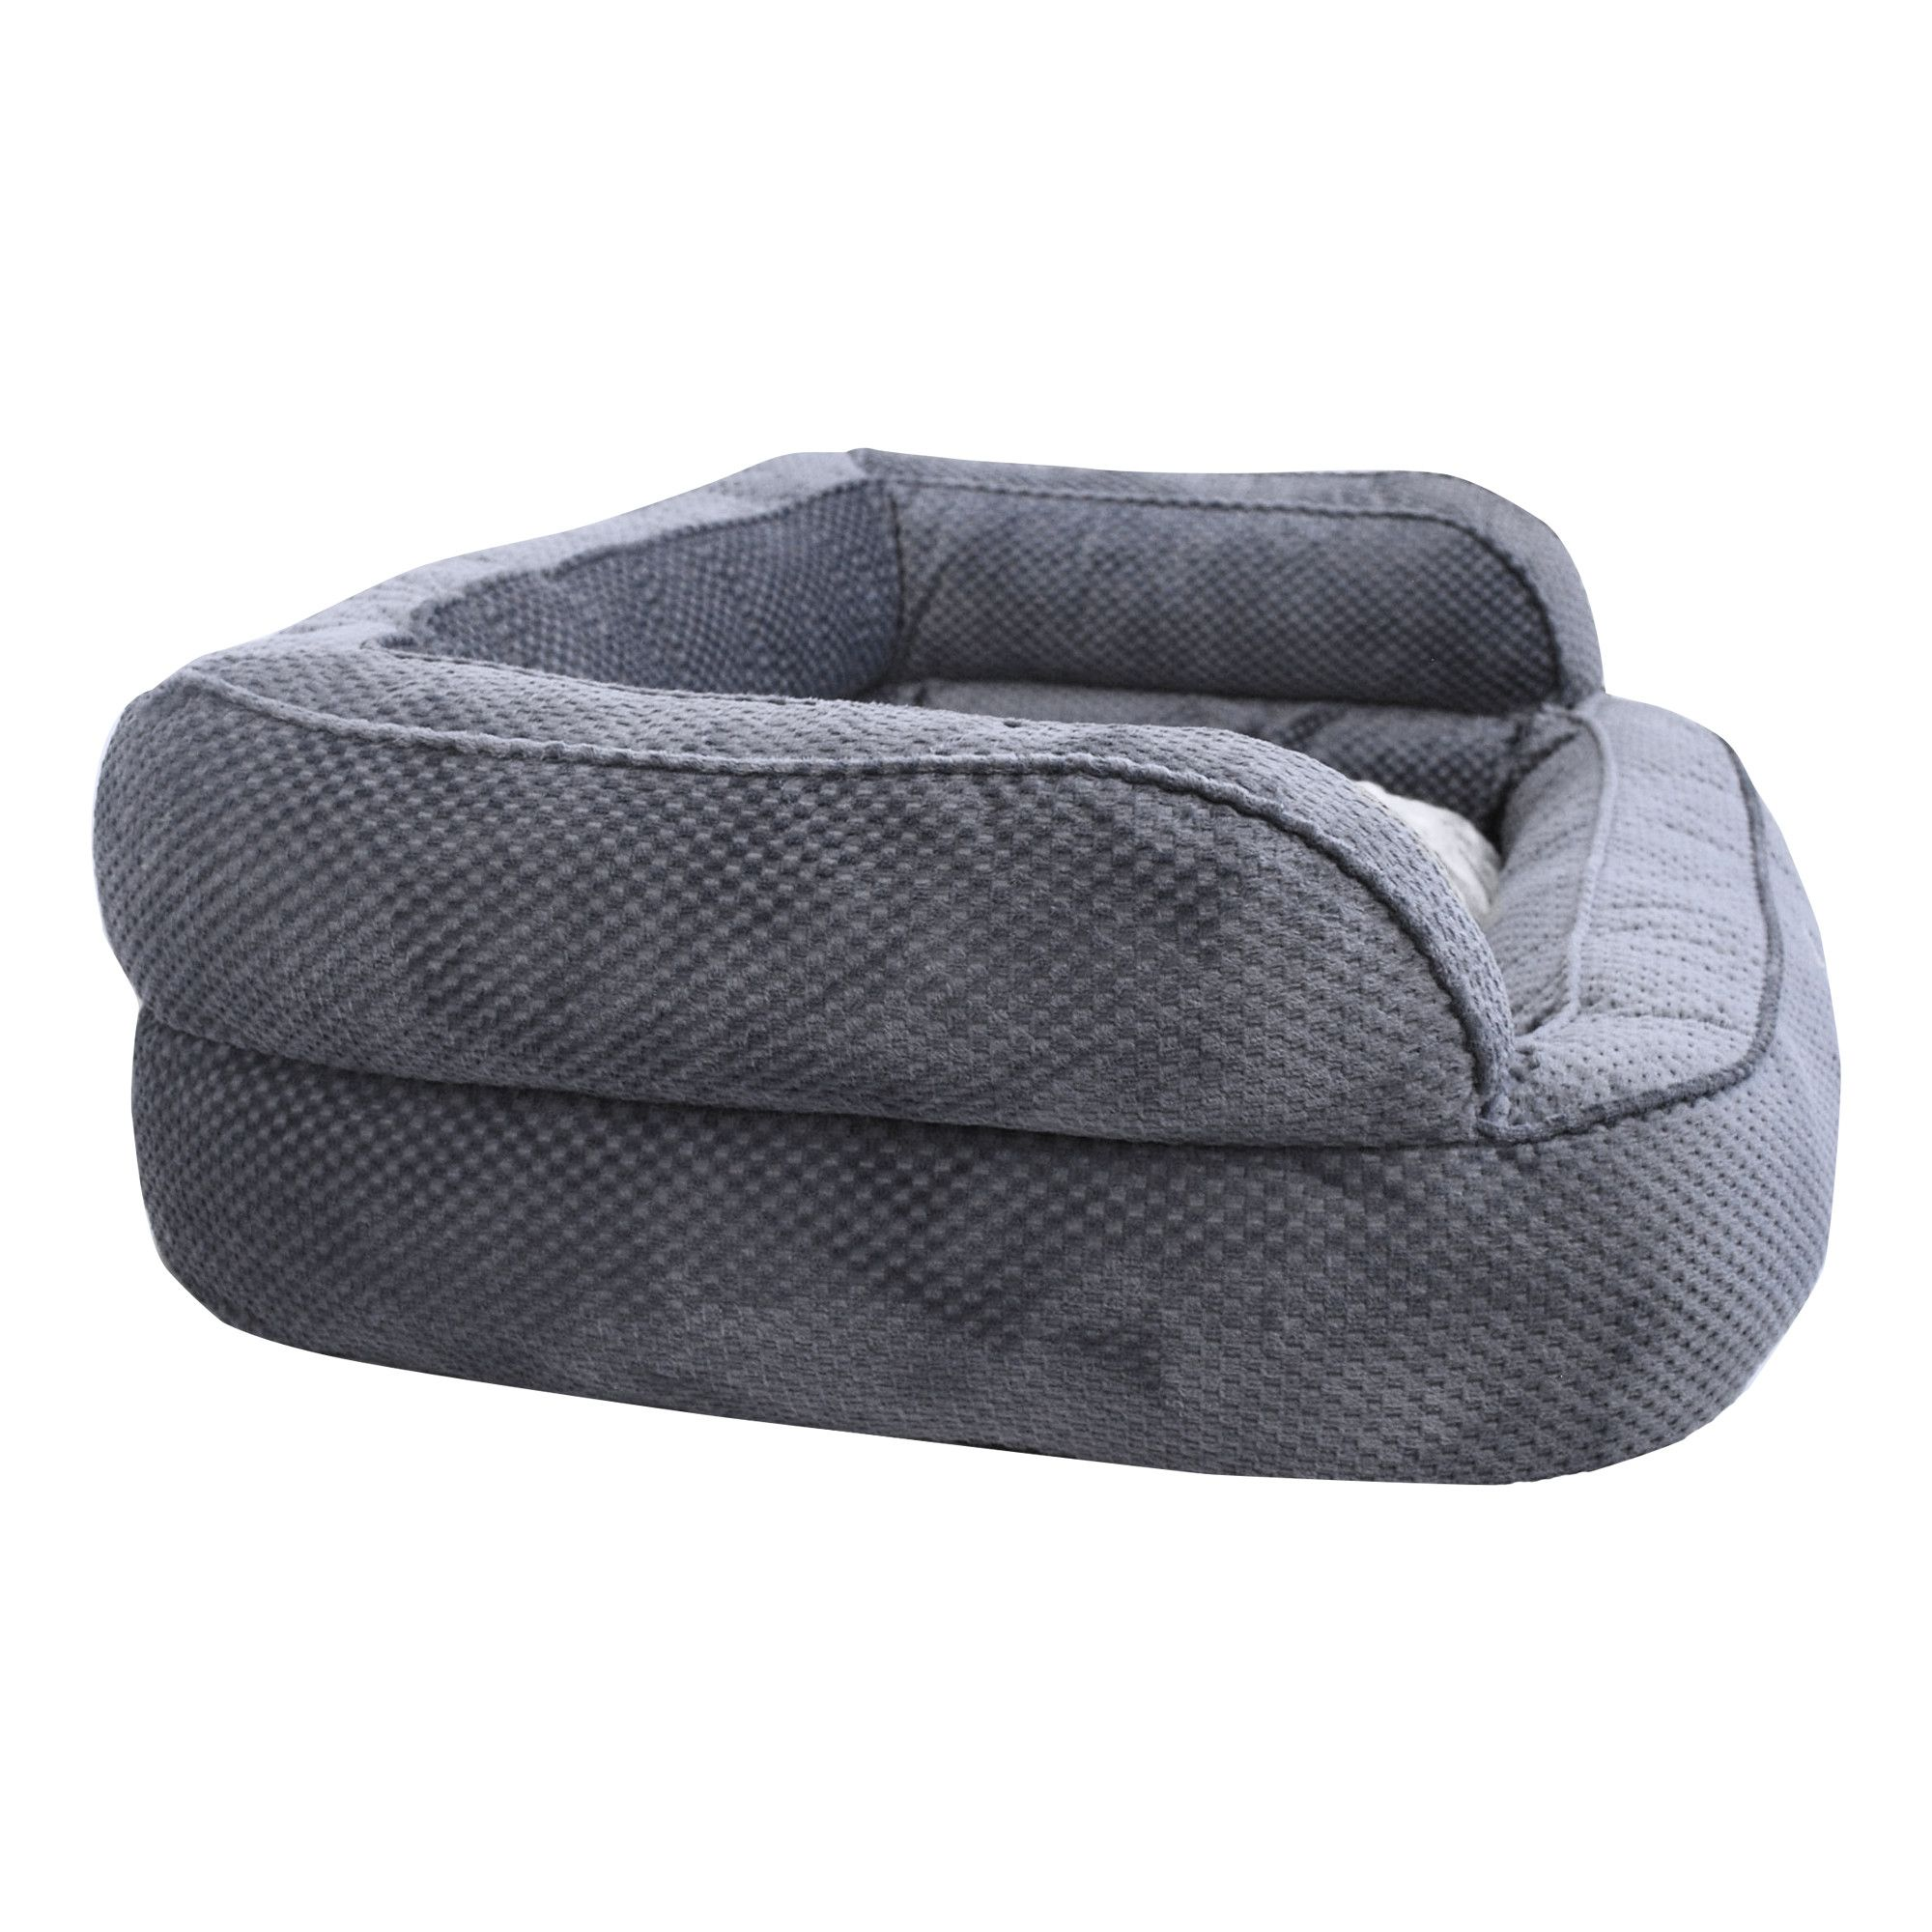 Pin by My Dog Store on My Dog Store Big dog beds, Dog